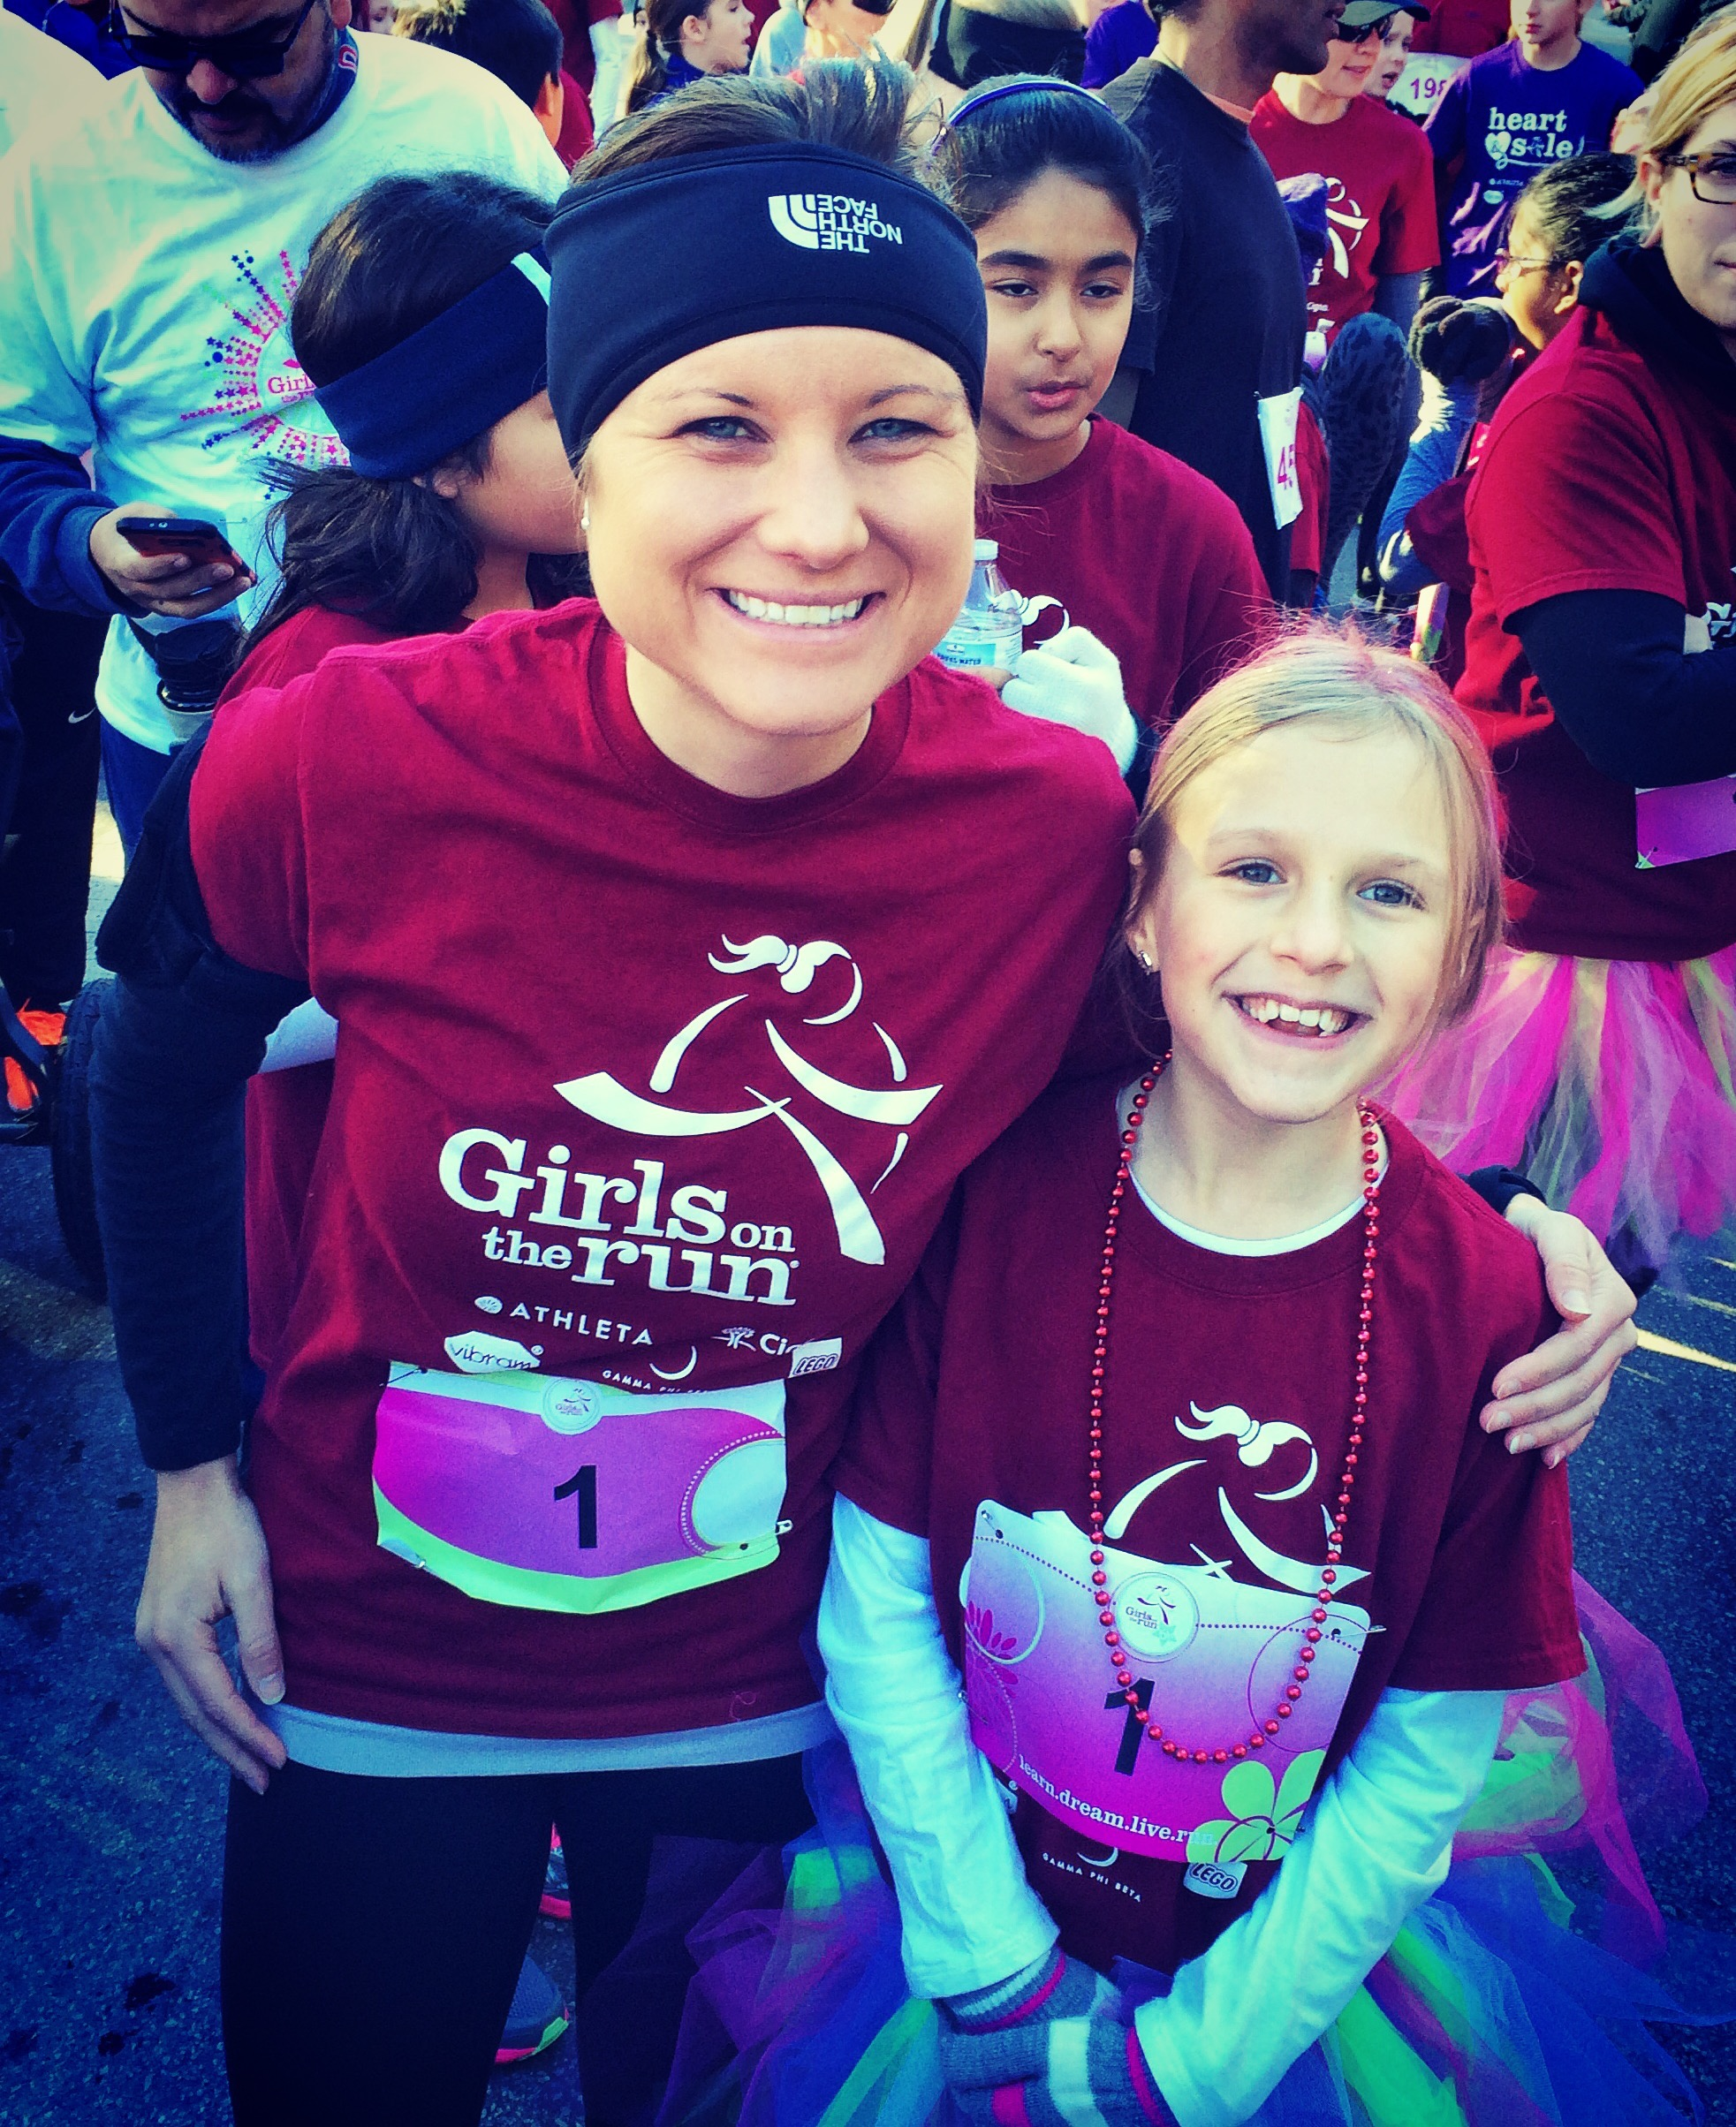 Girls on the Run 5K with Lydia